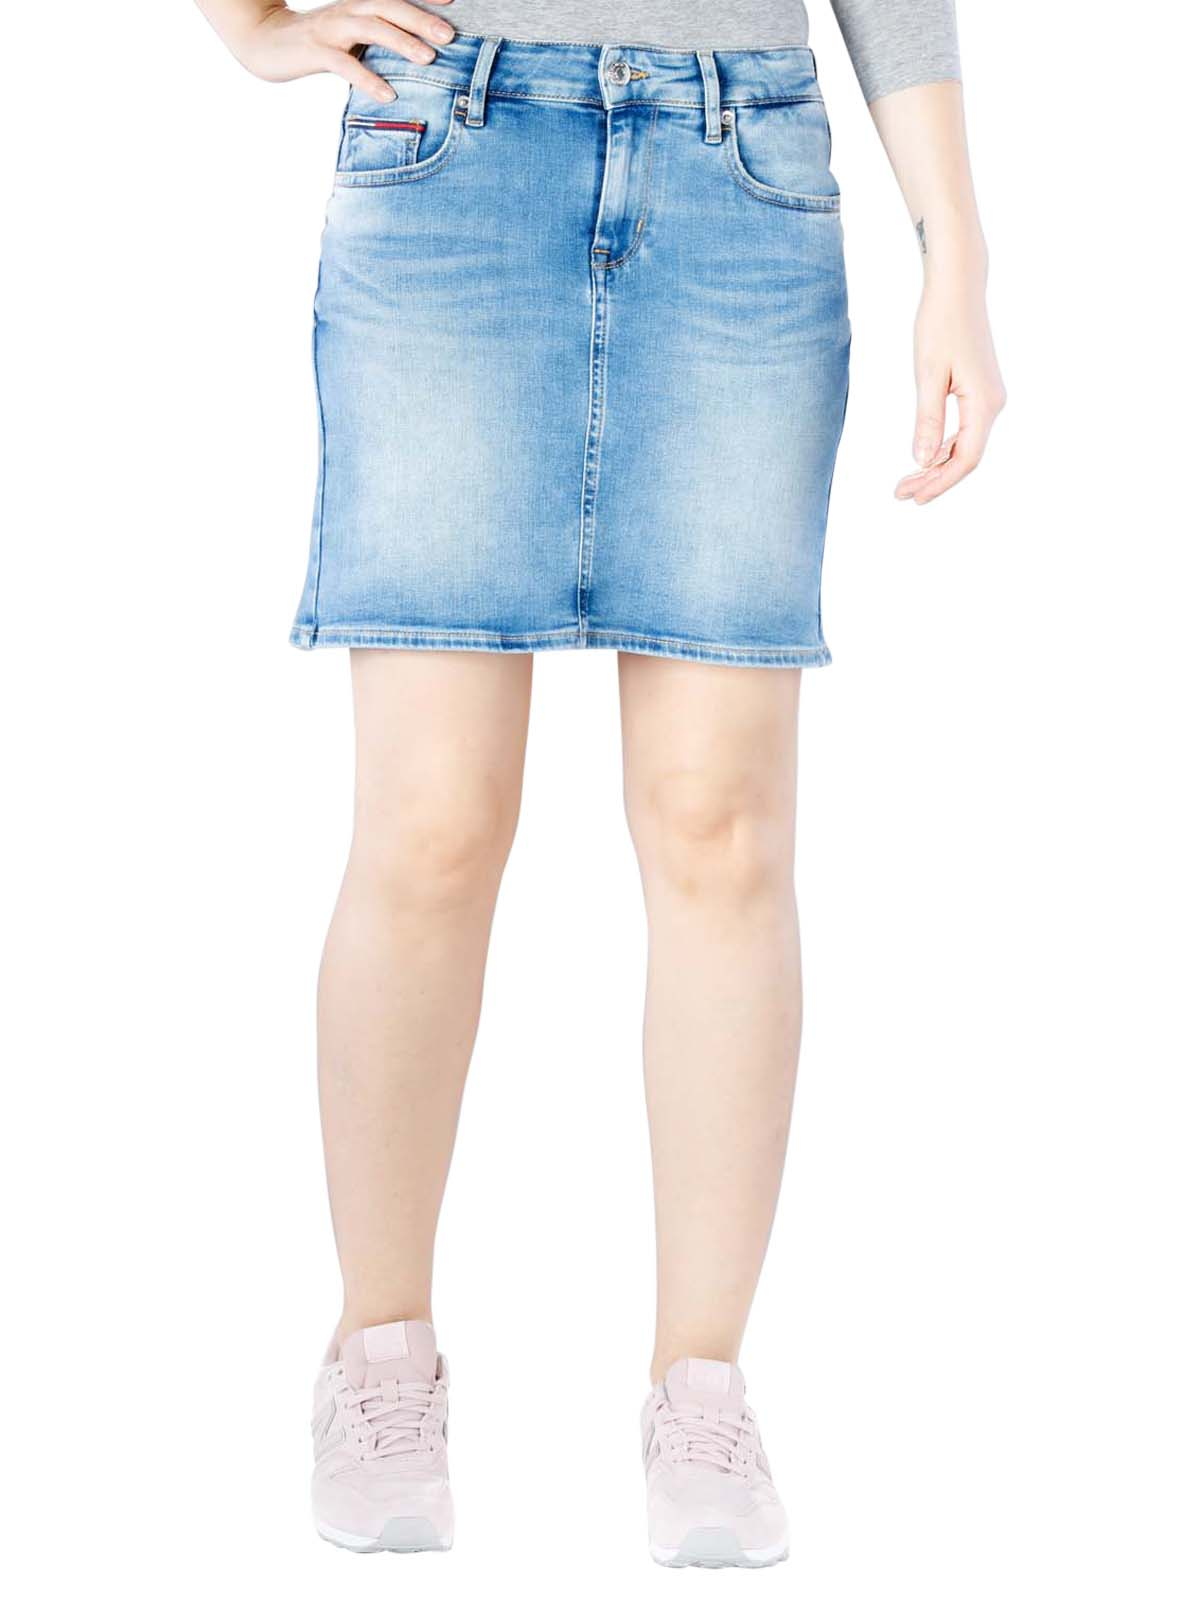 Clothing, Shoes & Accessories Women's Clothing Obliging Warehouse Denim Skirt 12